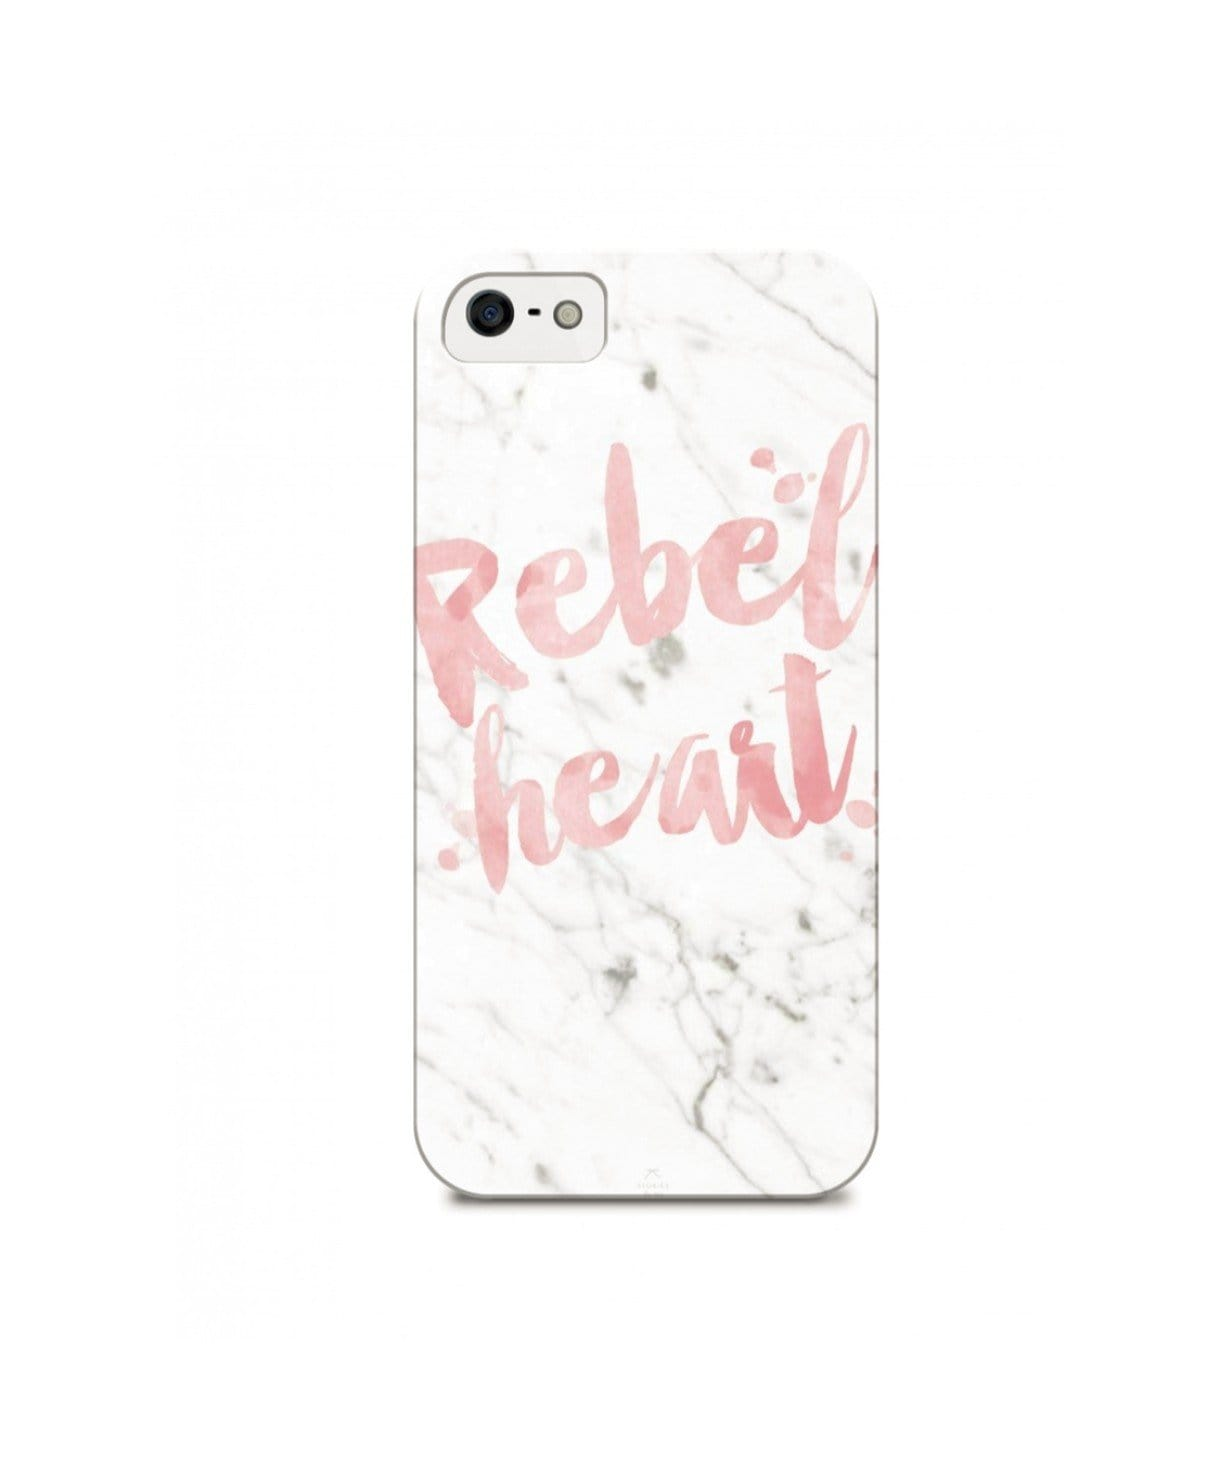 Rebel IPhone Cover (Personalisation Available) - Uptownie